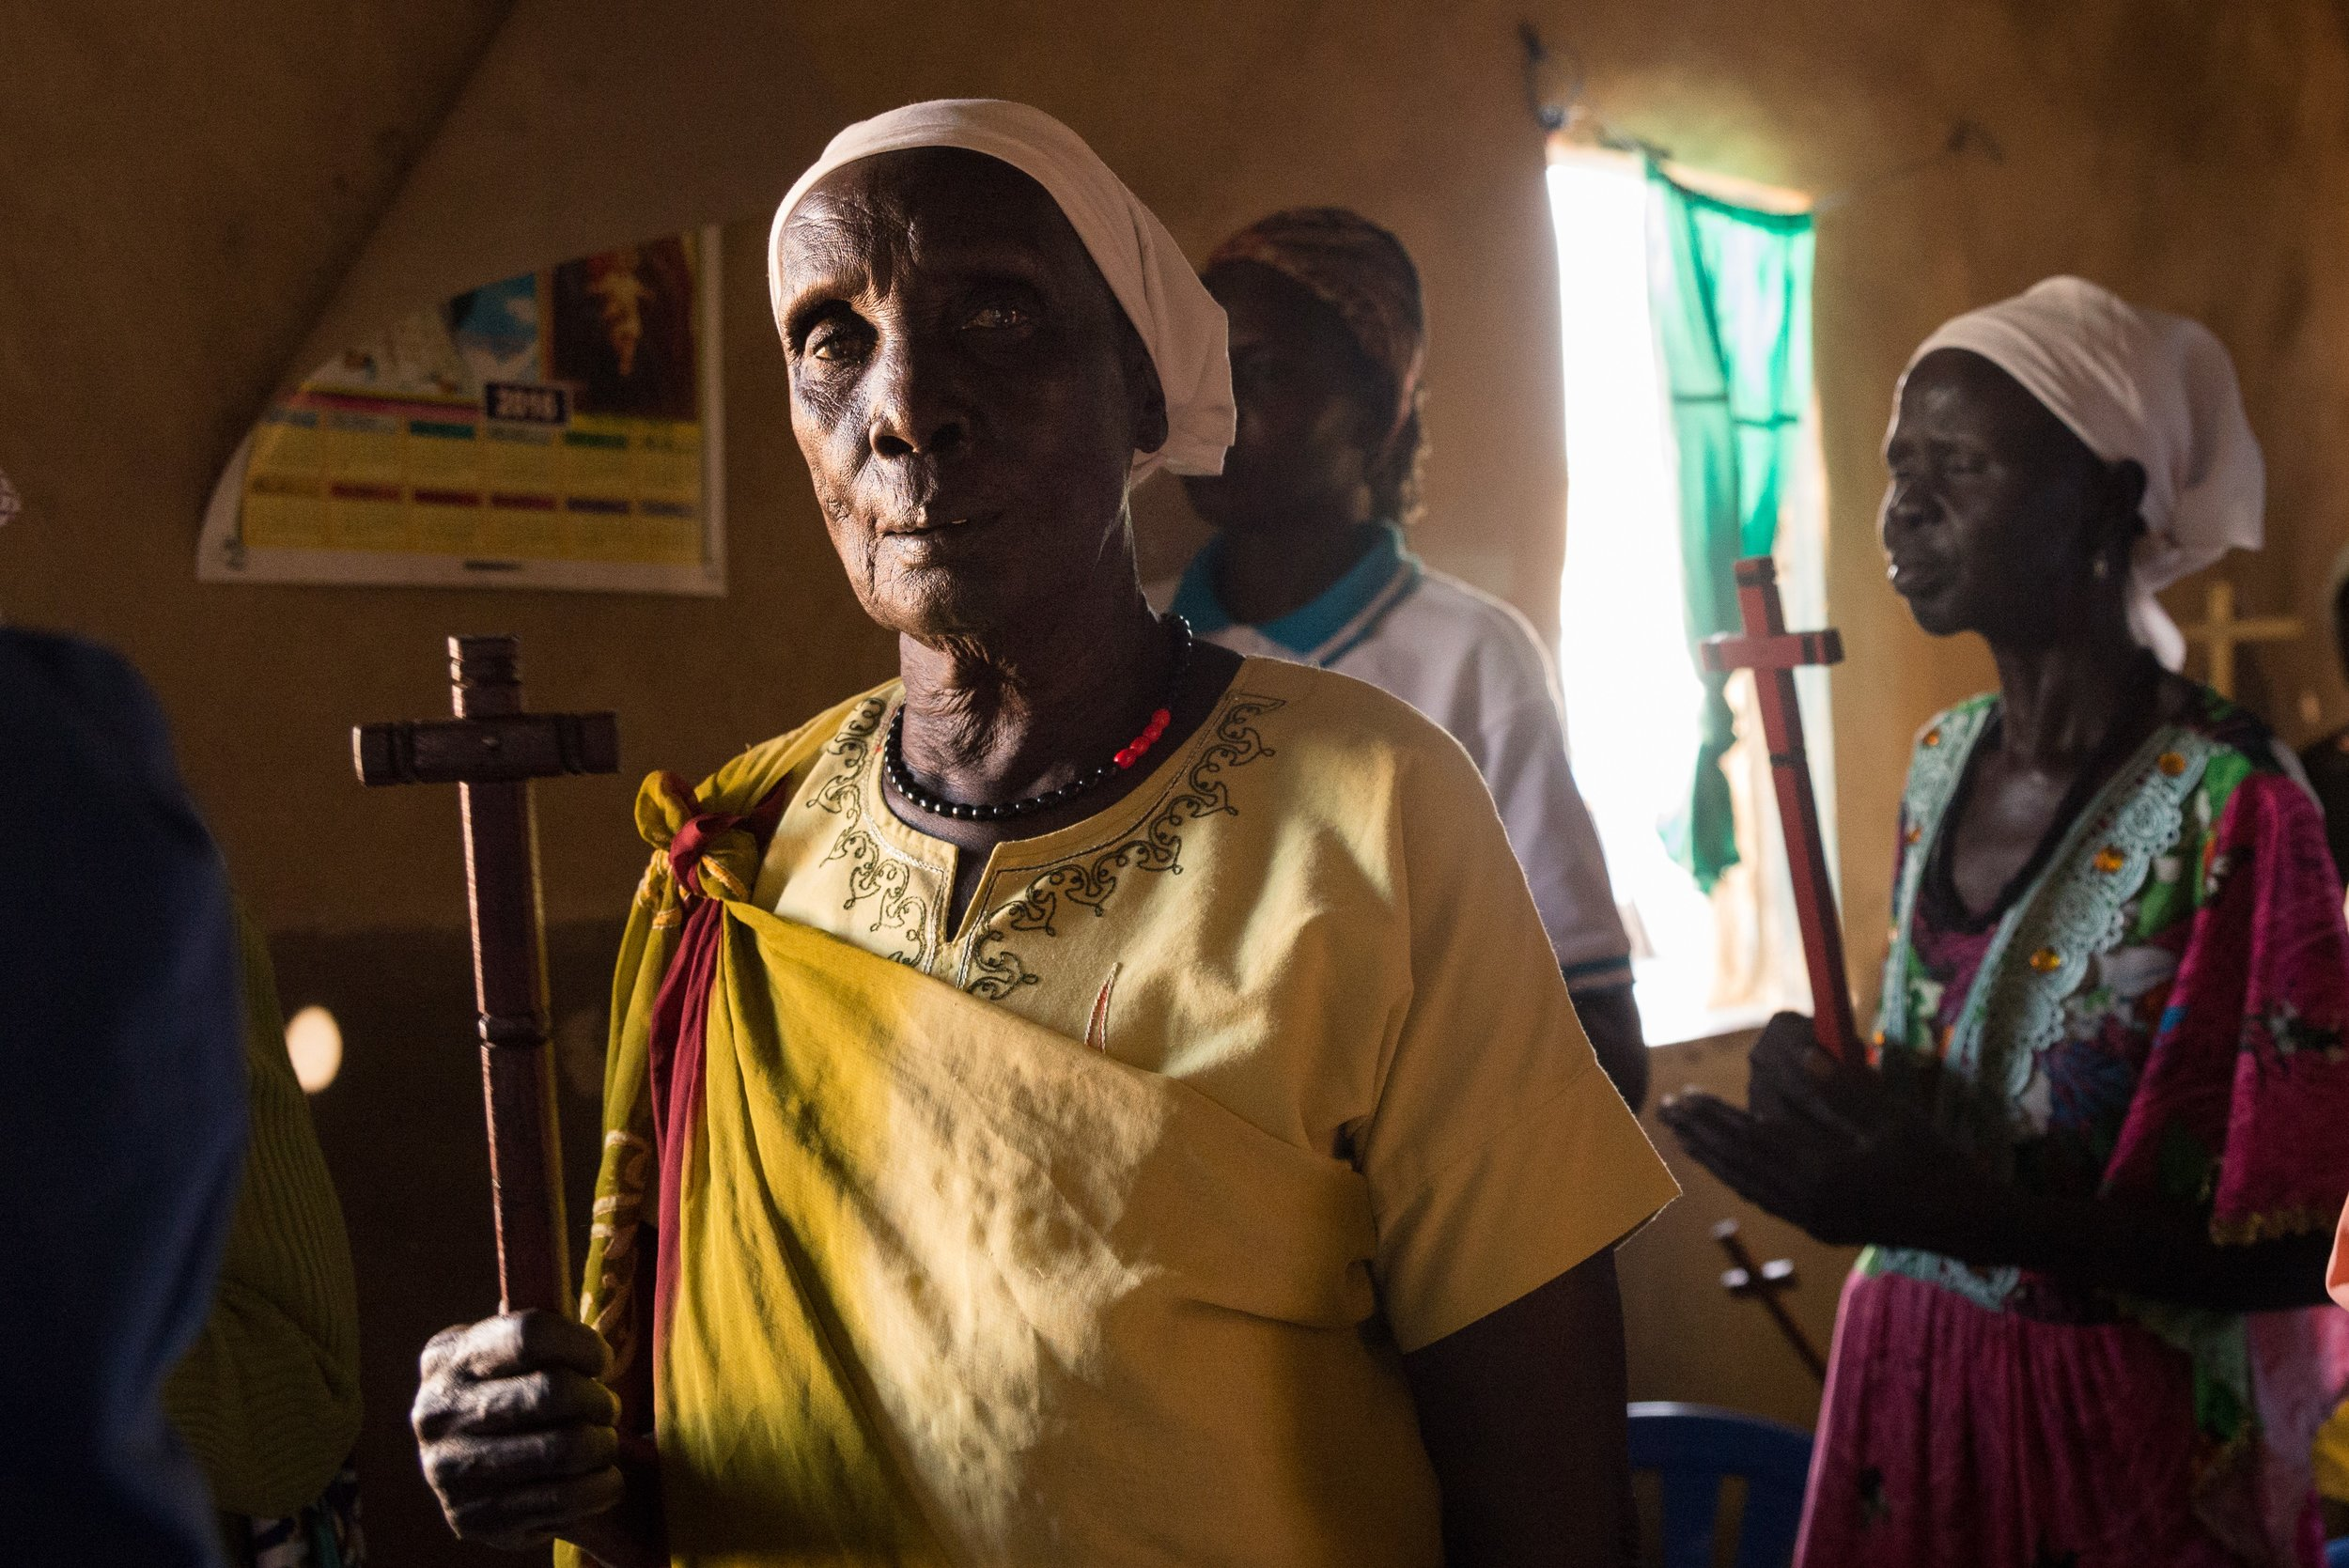 A South Sudanese refugee from the Dinka tribe holds a cross during a Protestant church service in northern Uganda.